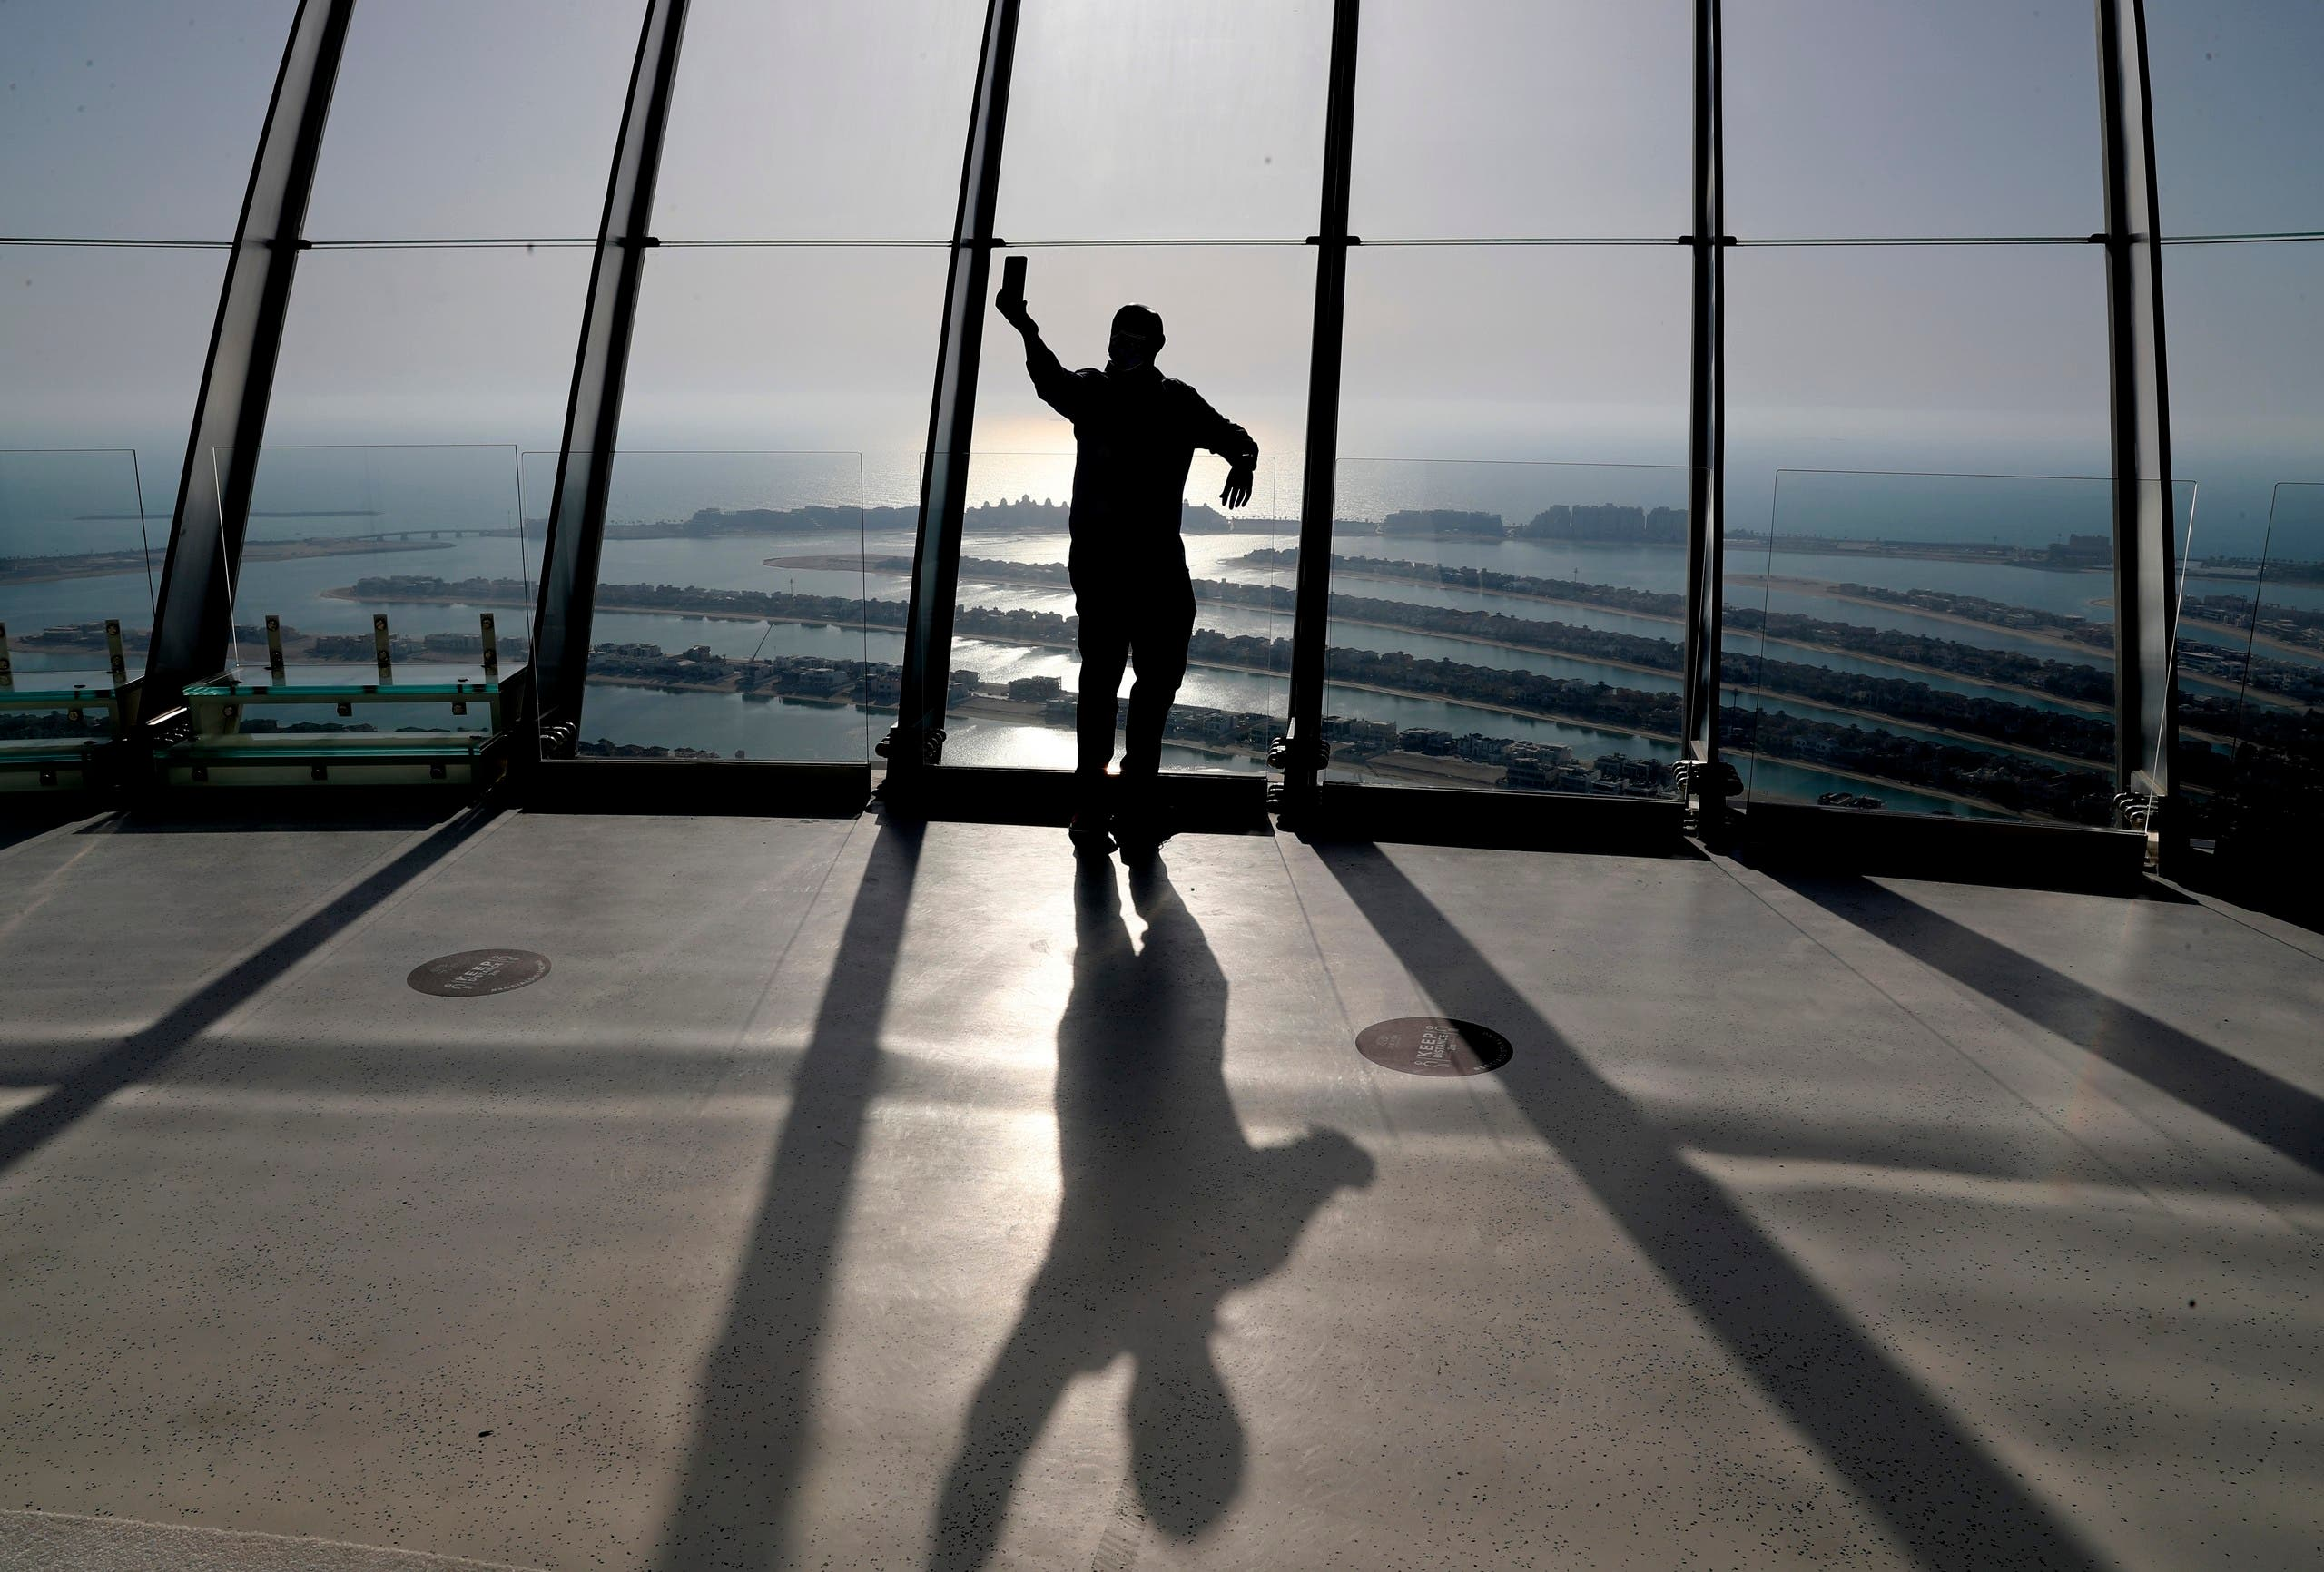 A man takes selfie on the observation deck of The View at The Palm Jumeirah in Dubai, United Arab Emirates, Tuesday, April 6, 2021. (AP)